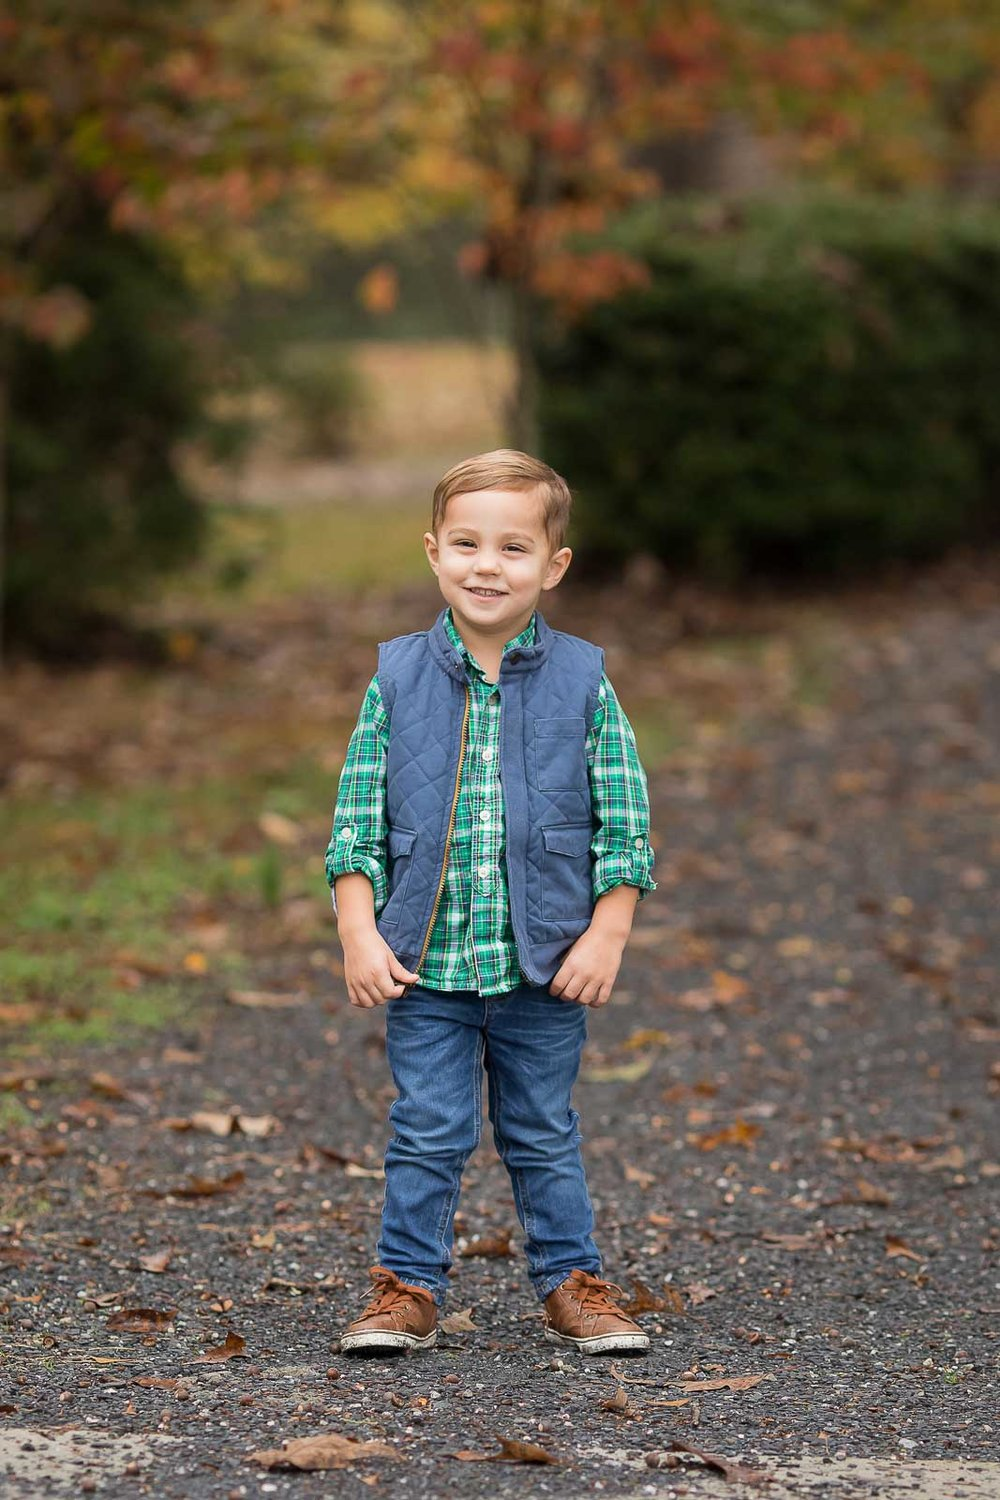 mini-session-poses-for-families-marcie-reif-12.jpg